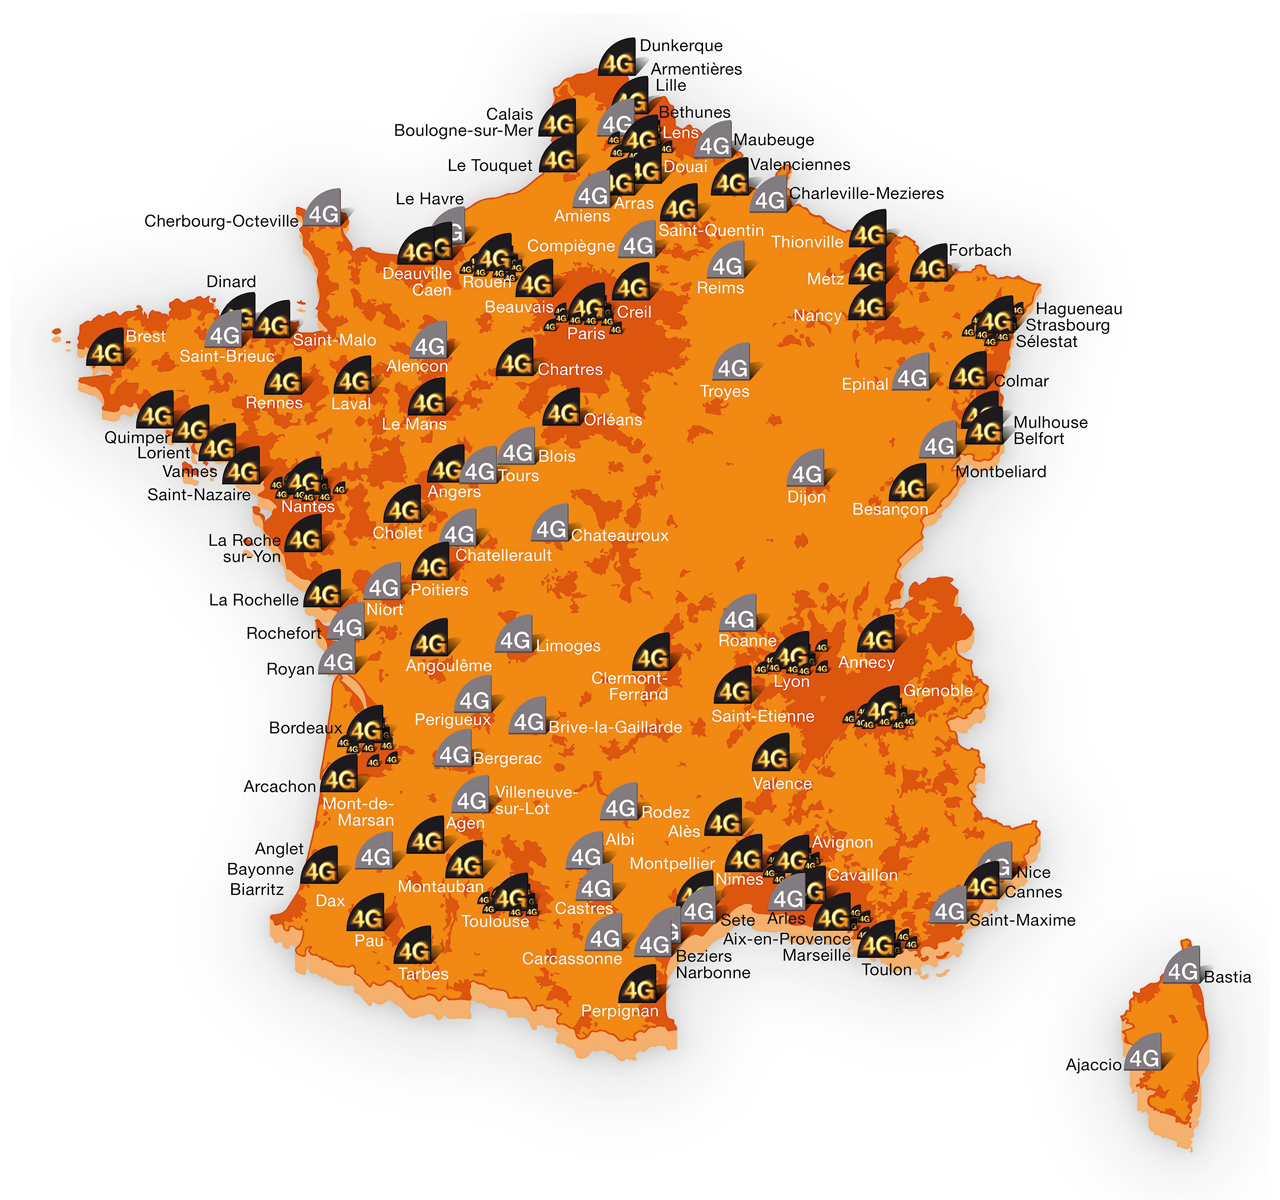 oranges-4g-france-septembre-2013